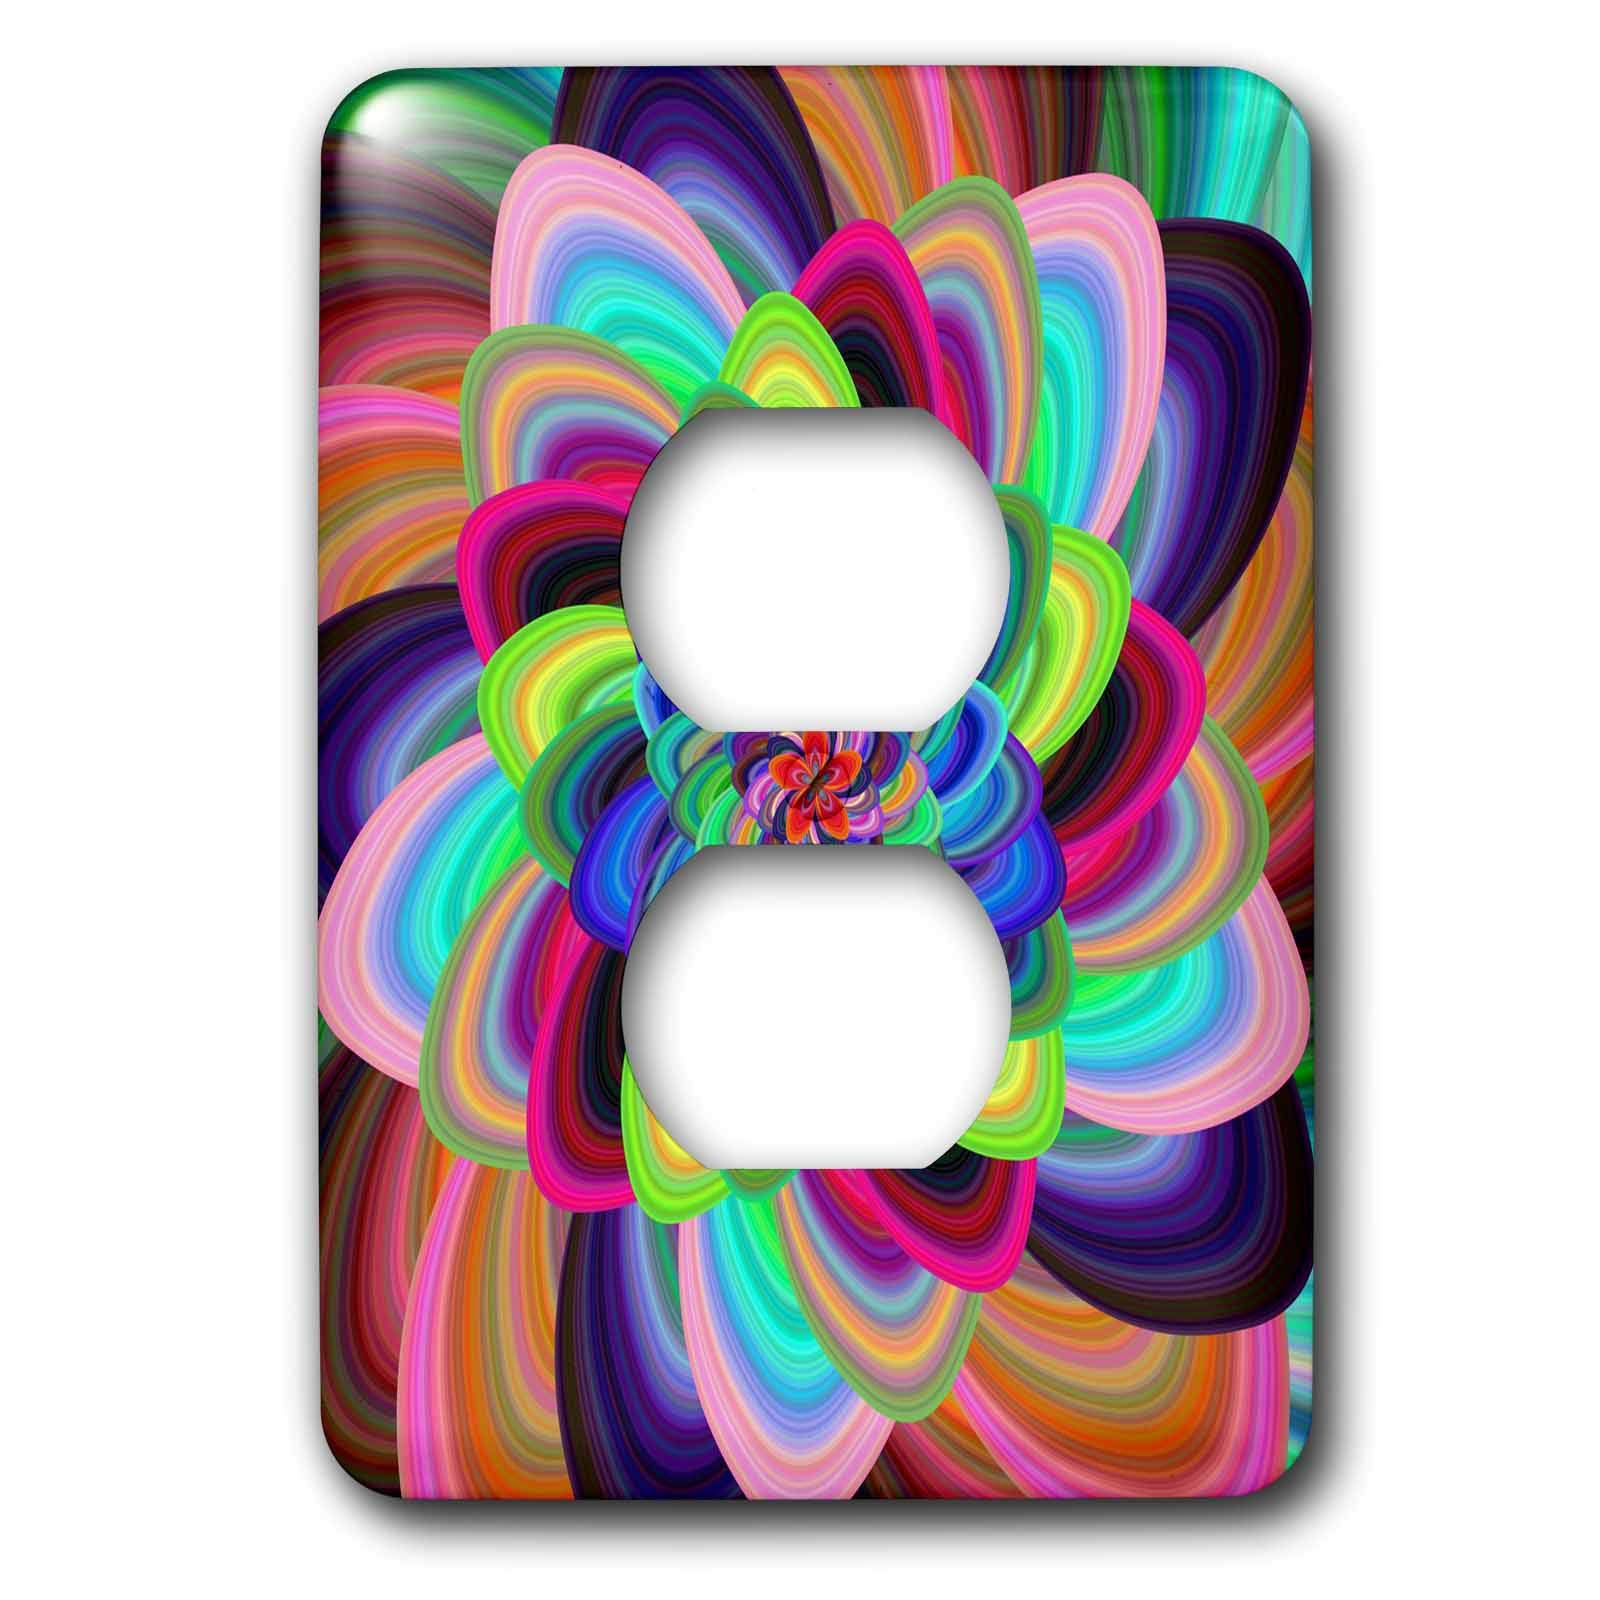 3dRose David Zydd - Floral Designs - Colorful Floral Spiral - abstract floral artwork - Light Switch Covers - 2 plug outlet cover (lsp_289120_6)